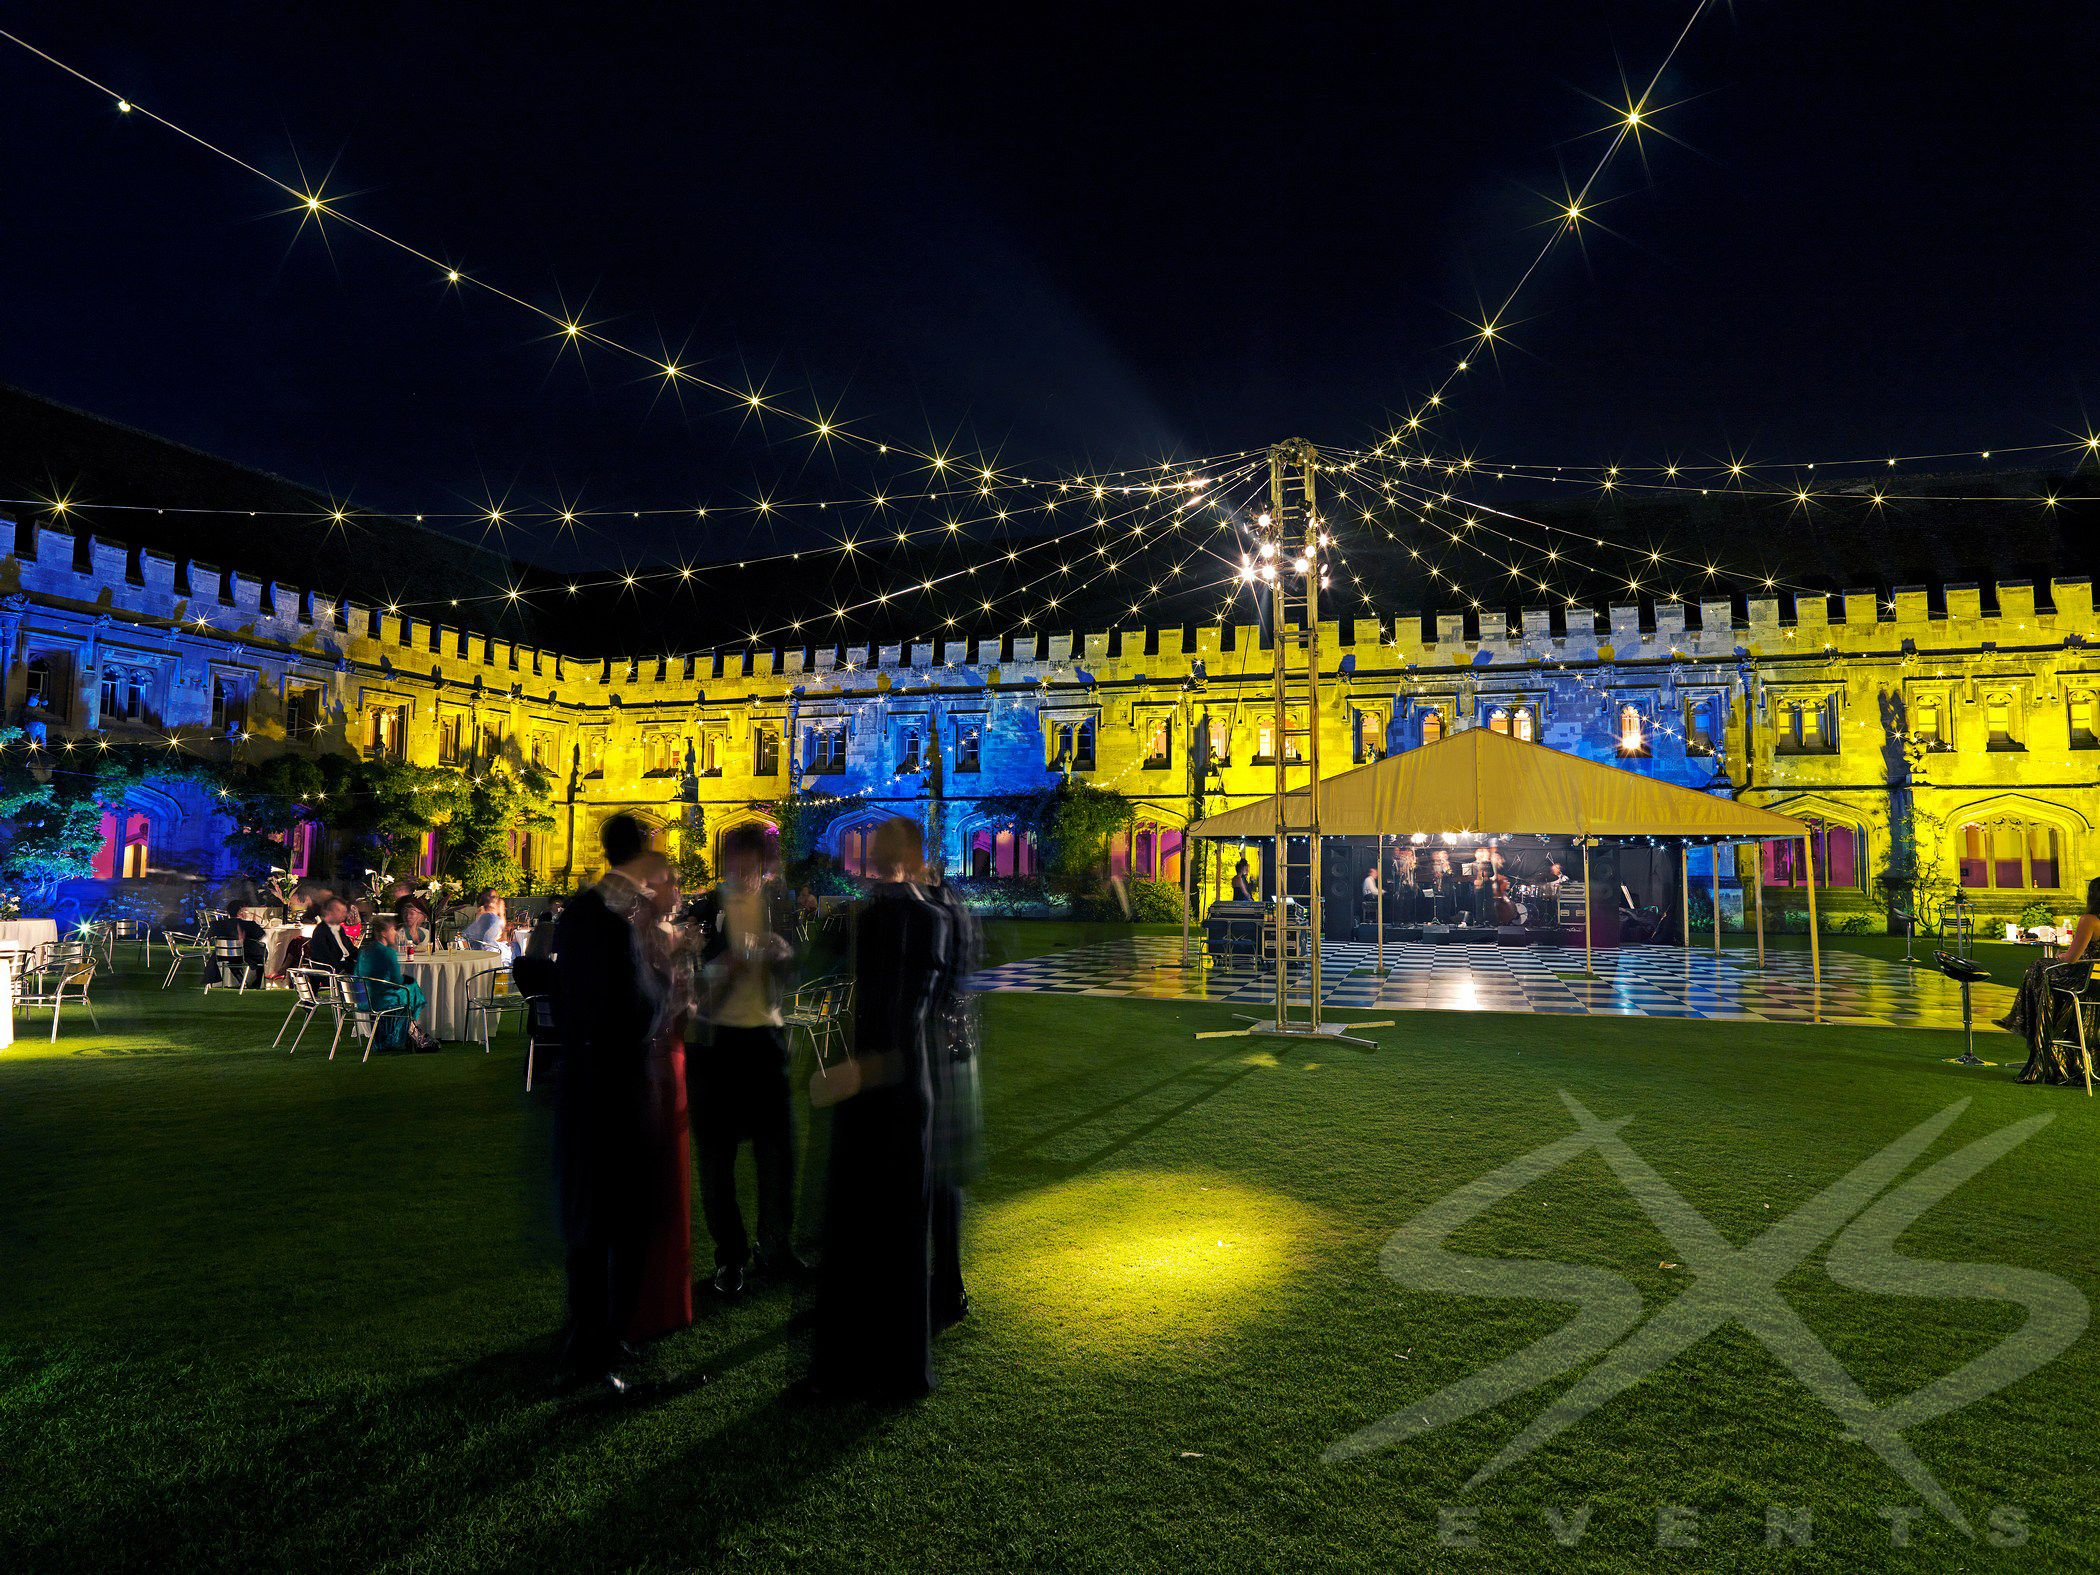 Outdoor fairy light canopy with yellow and blue outdoor outdoor fairy light canopy with yellow and blue outdoor architectural lighting for a college ball aloadofball Choice Image